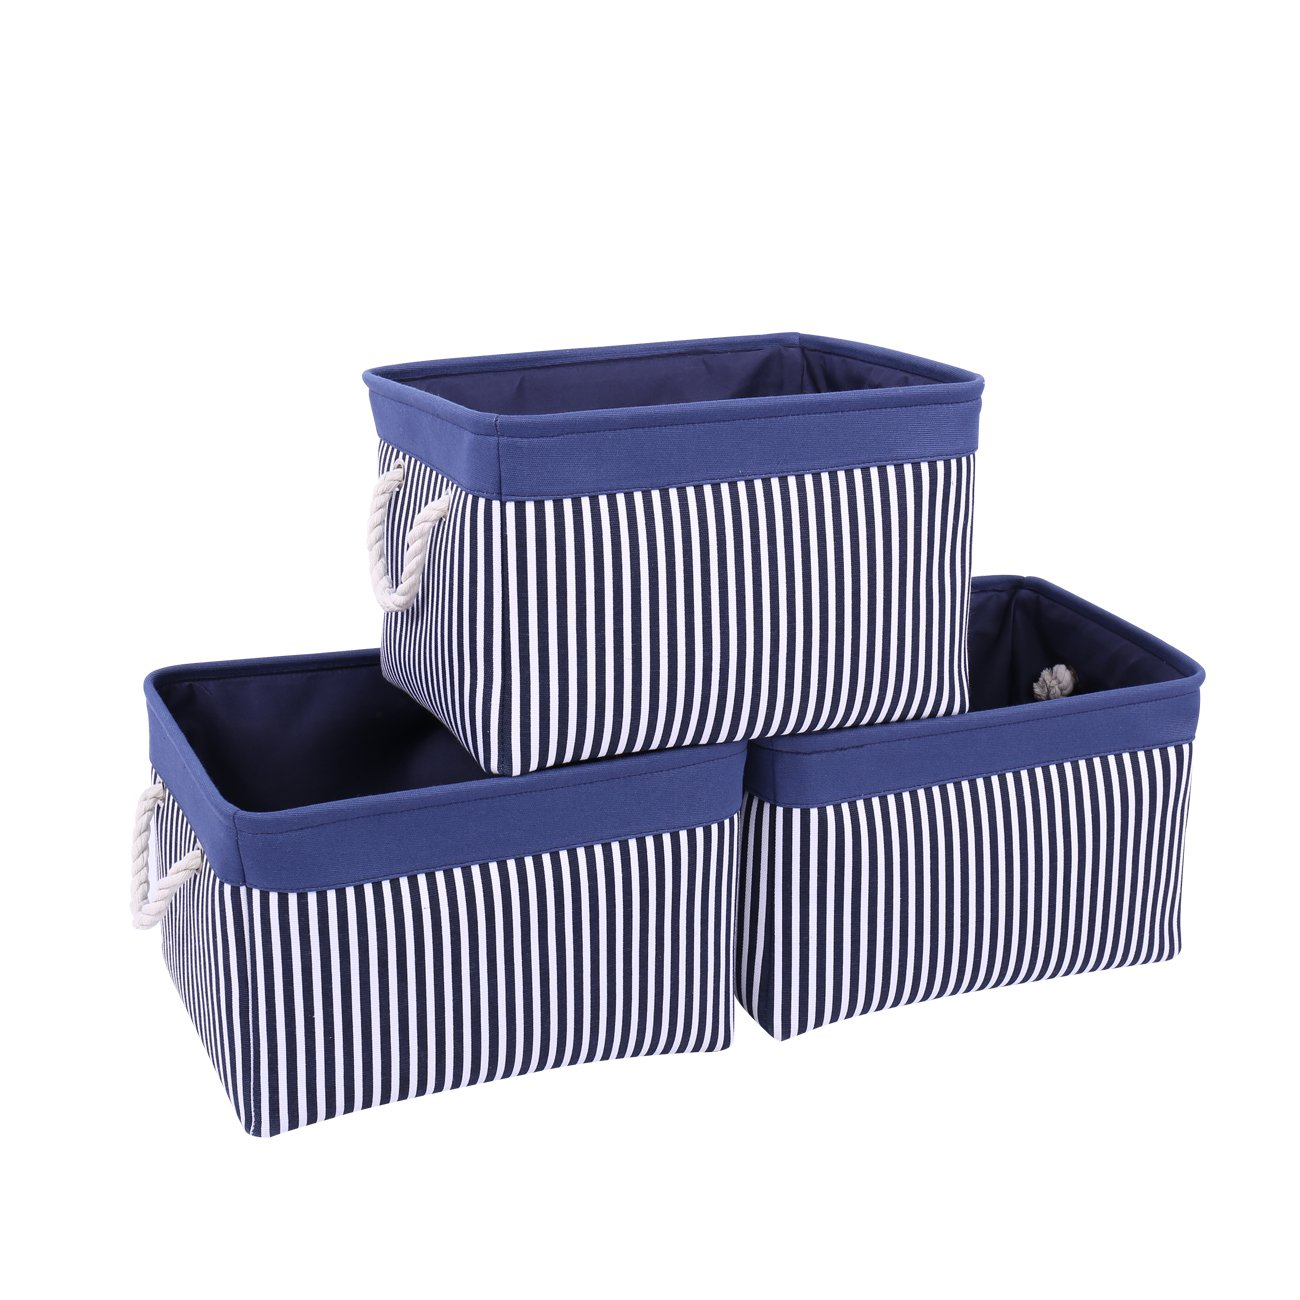 TcaFmac Large Navy Fabric Storage Basket Bin[3-Pack] Collapsible Canvas Storage Containers Organizing Baskets with Rope Handles Baskets for Gifts Empty Baby Basket (Navy Patchwork, 3-Pack)